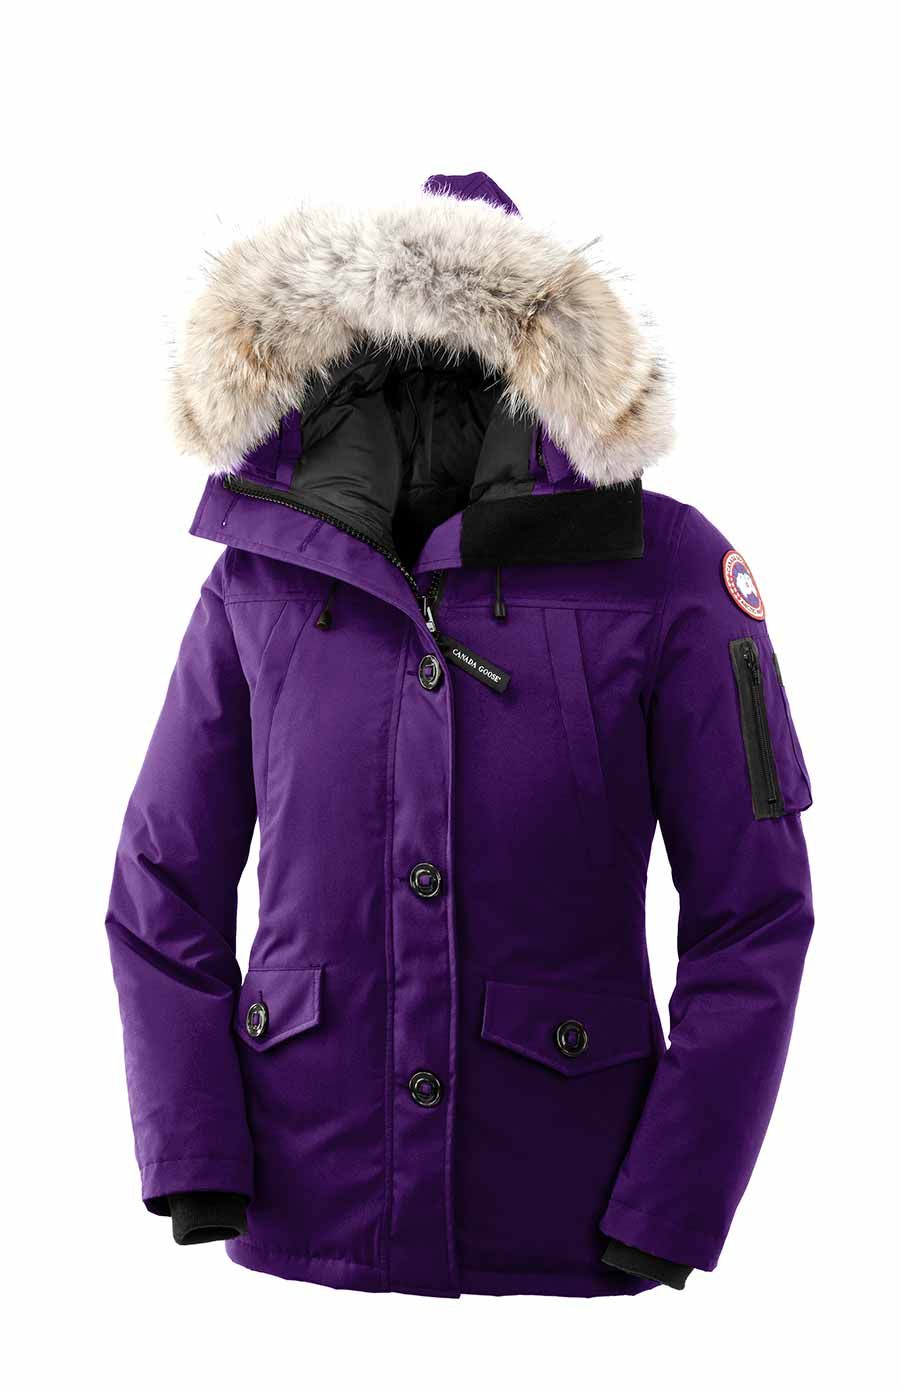 canada goose montebello parka in arctic dusk purple canada goose parka fashion outfits. Black Bedroom Furniture Sets. Home Design Ideas